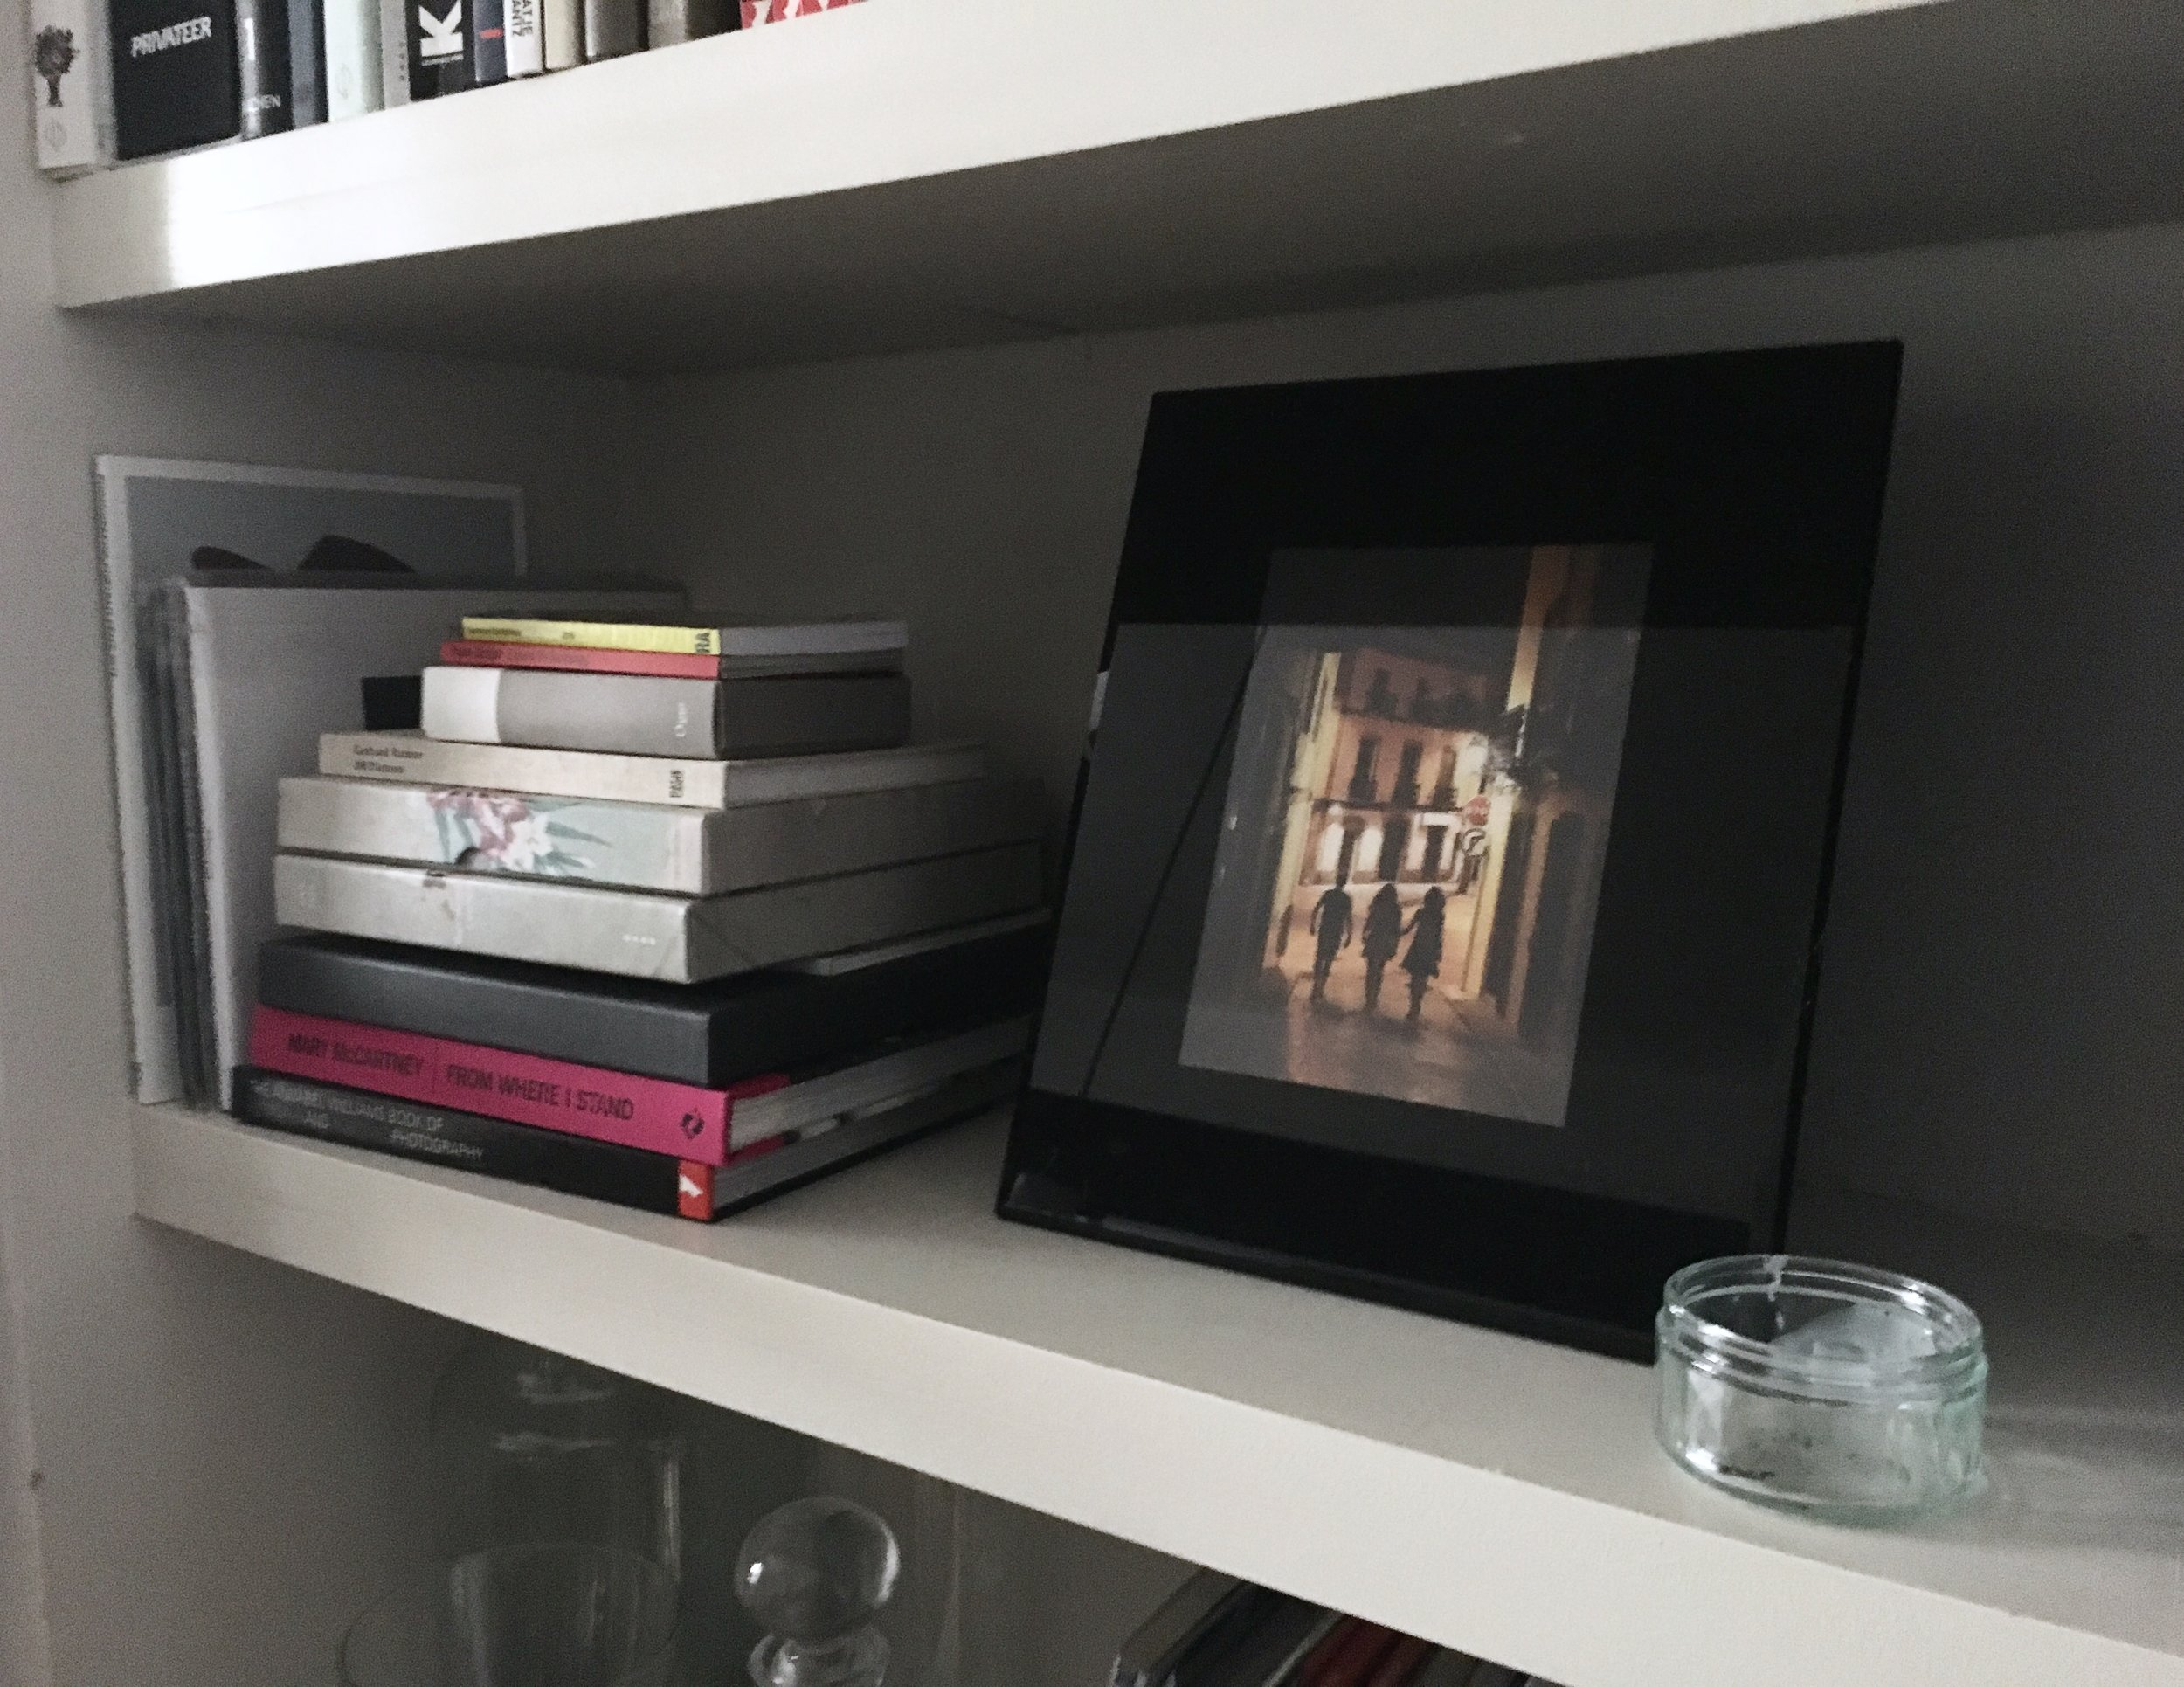 STYLING YOUR BOOKSHELVES - The Grown Up Edit